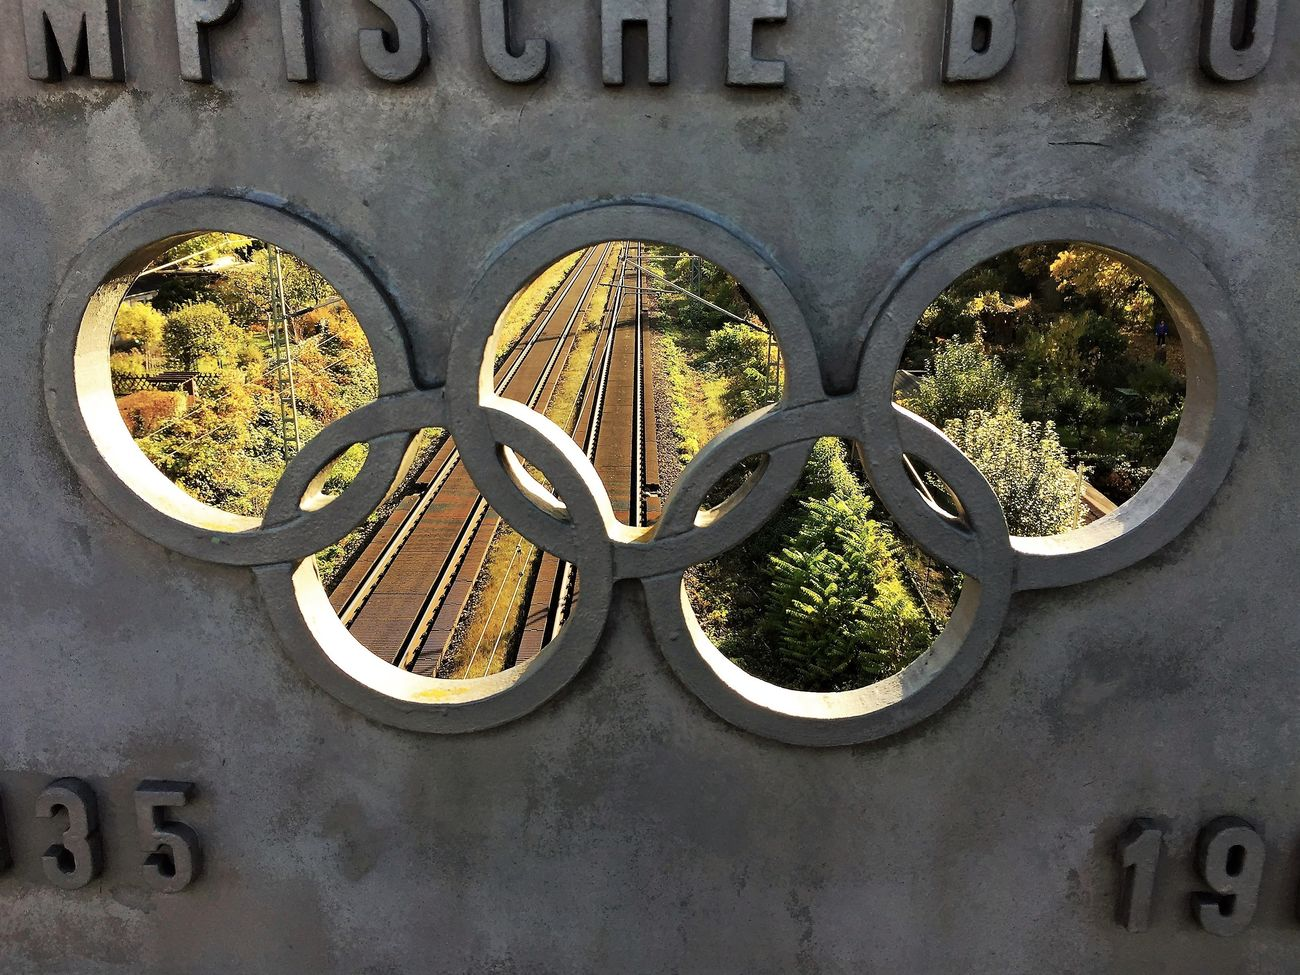 Bridge Close-up Day No People Olympic Outdoors Rails Railway Rings